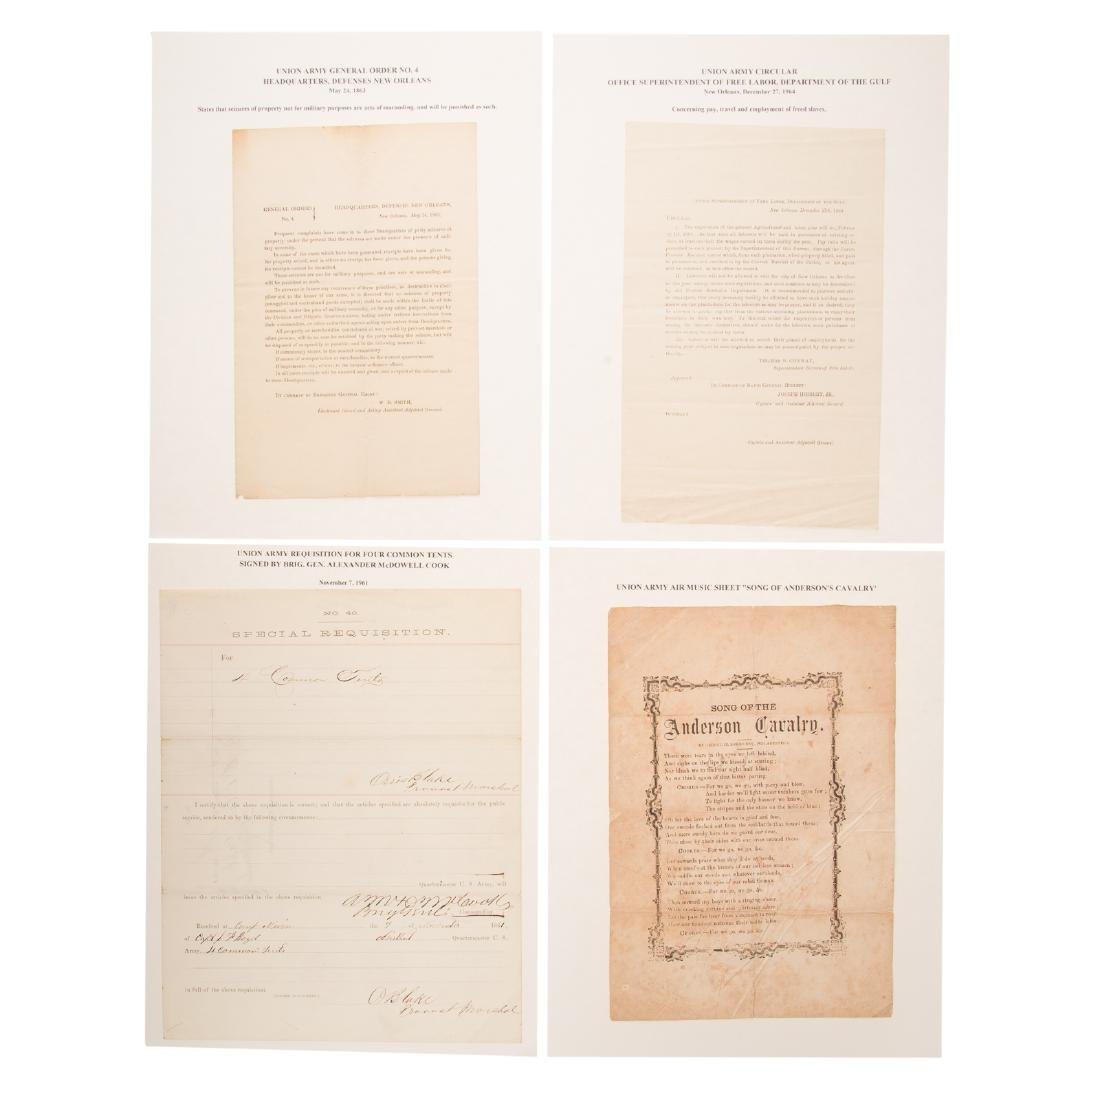 [US] Three Interesting Union Army documents